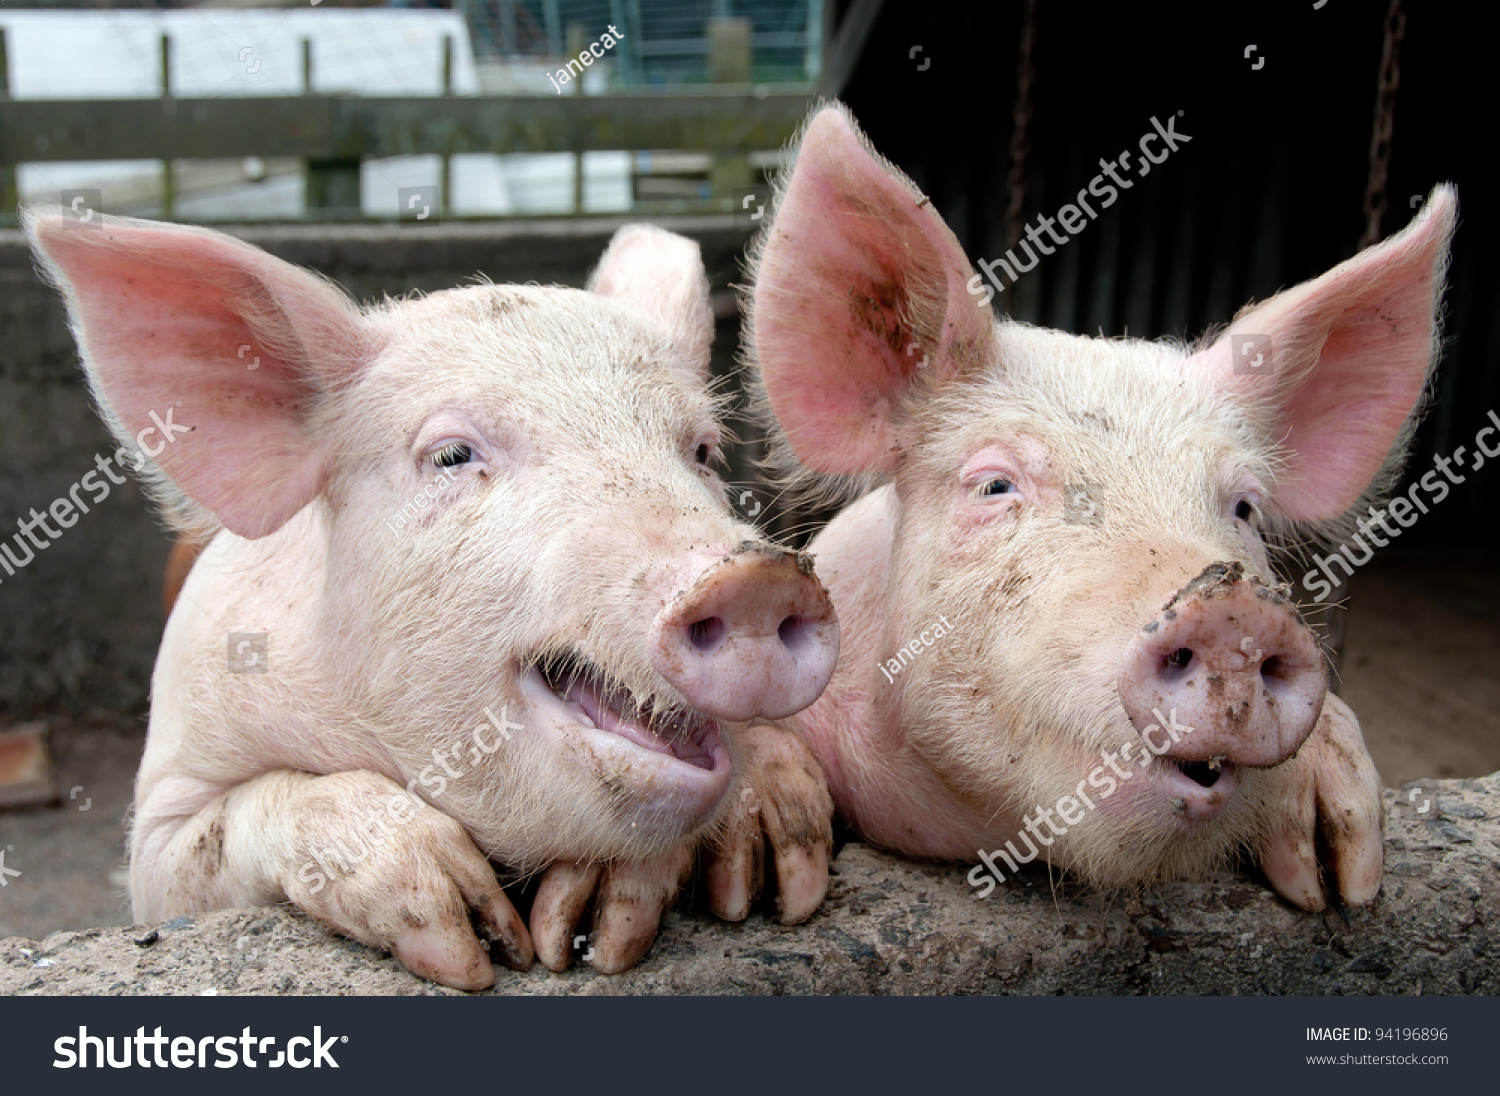 Funny pig faces